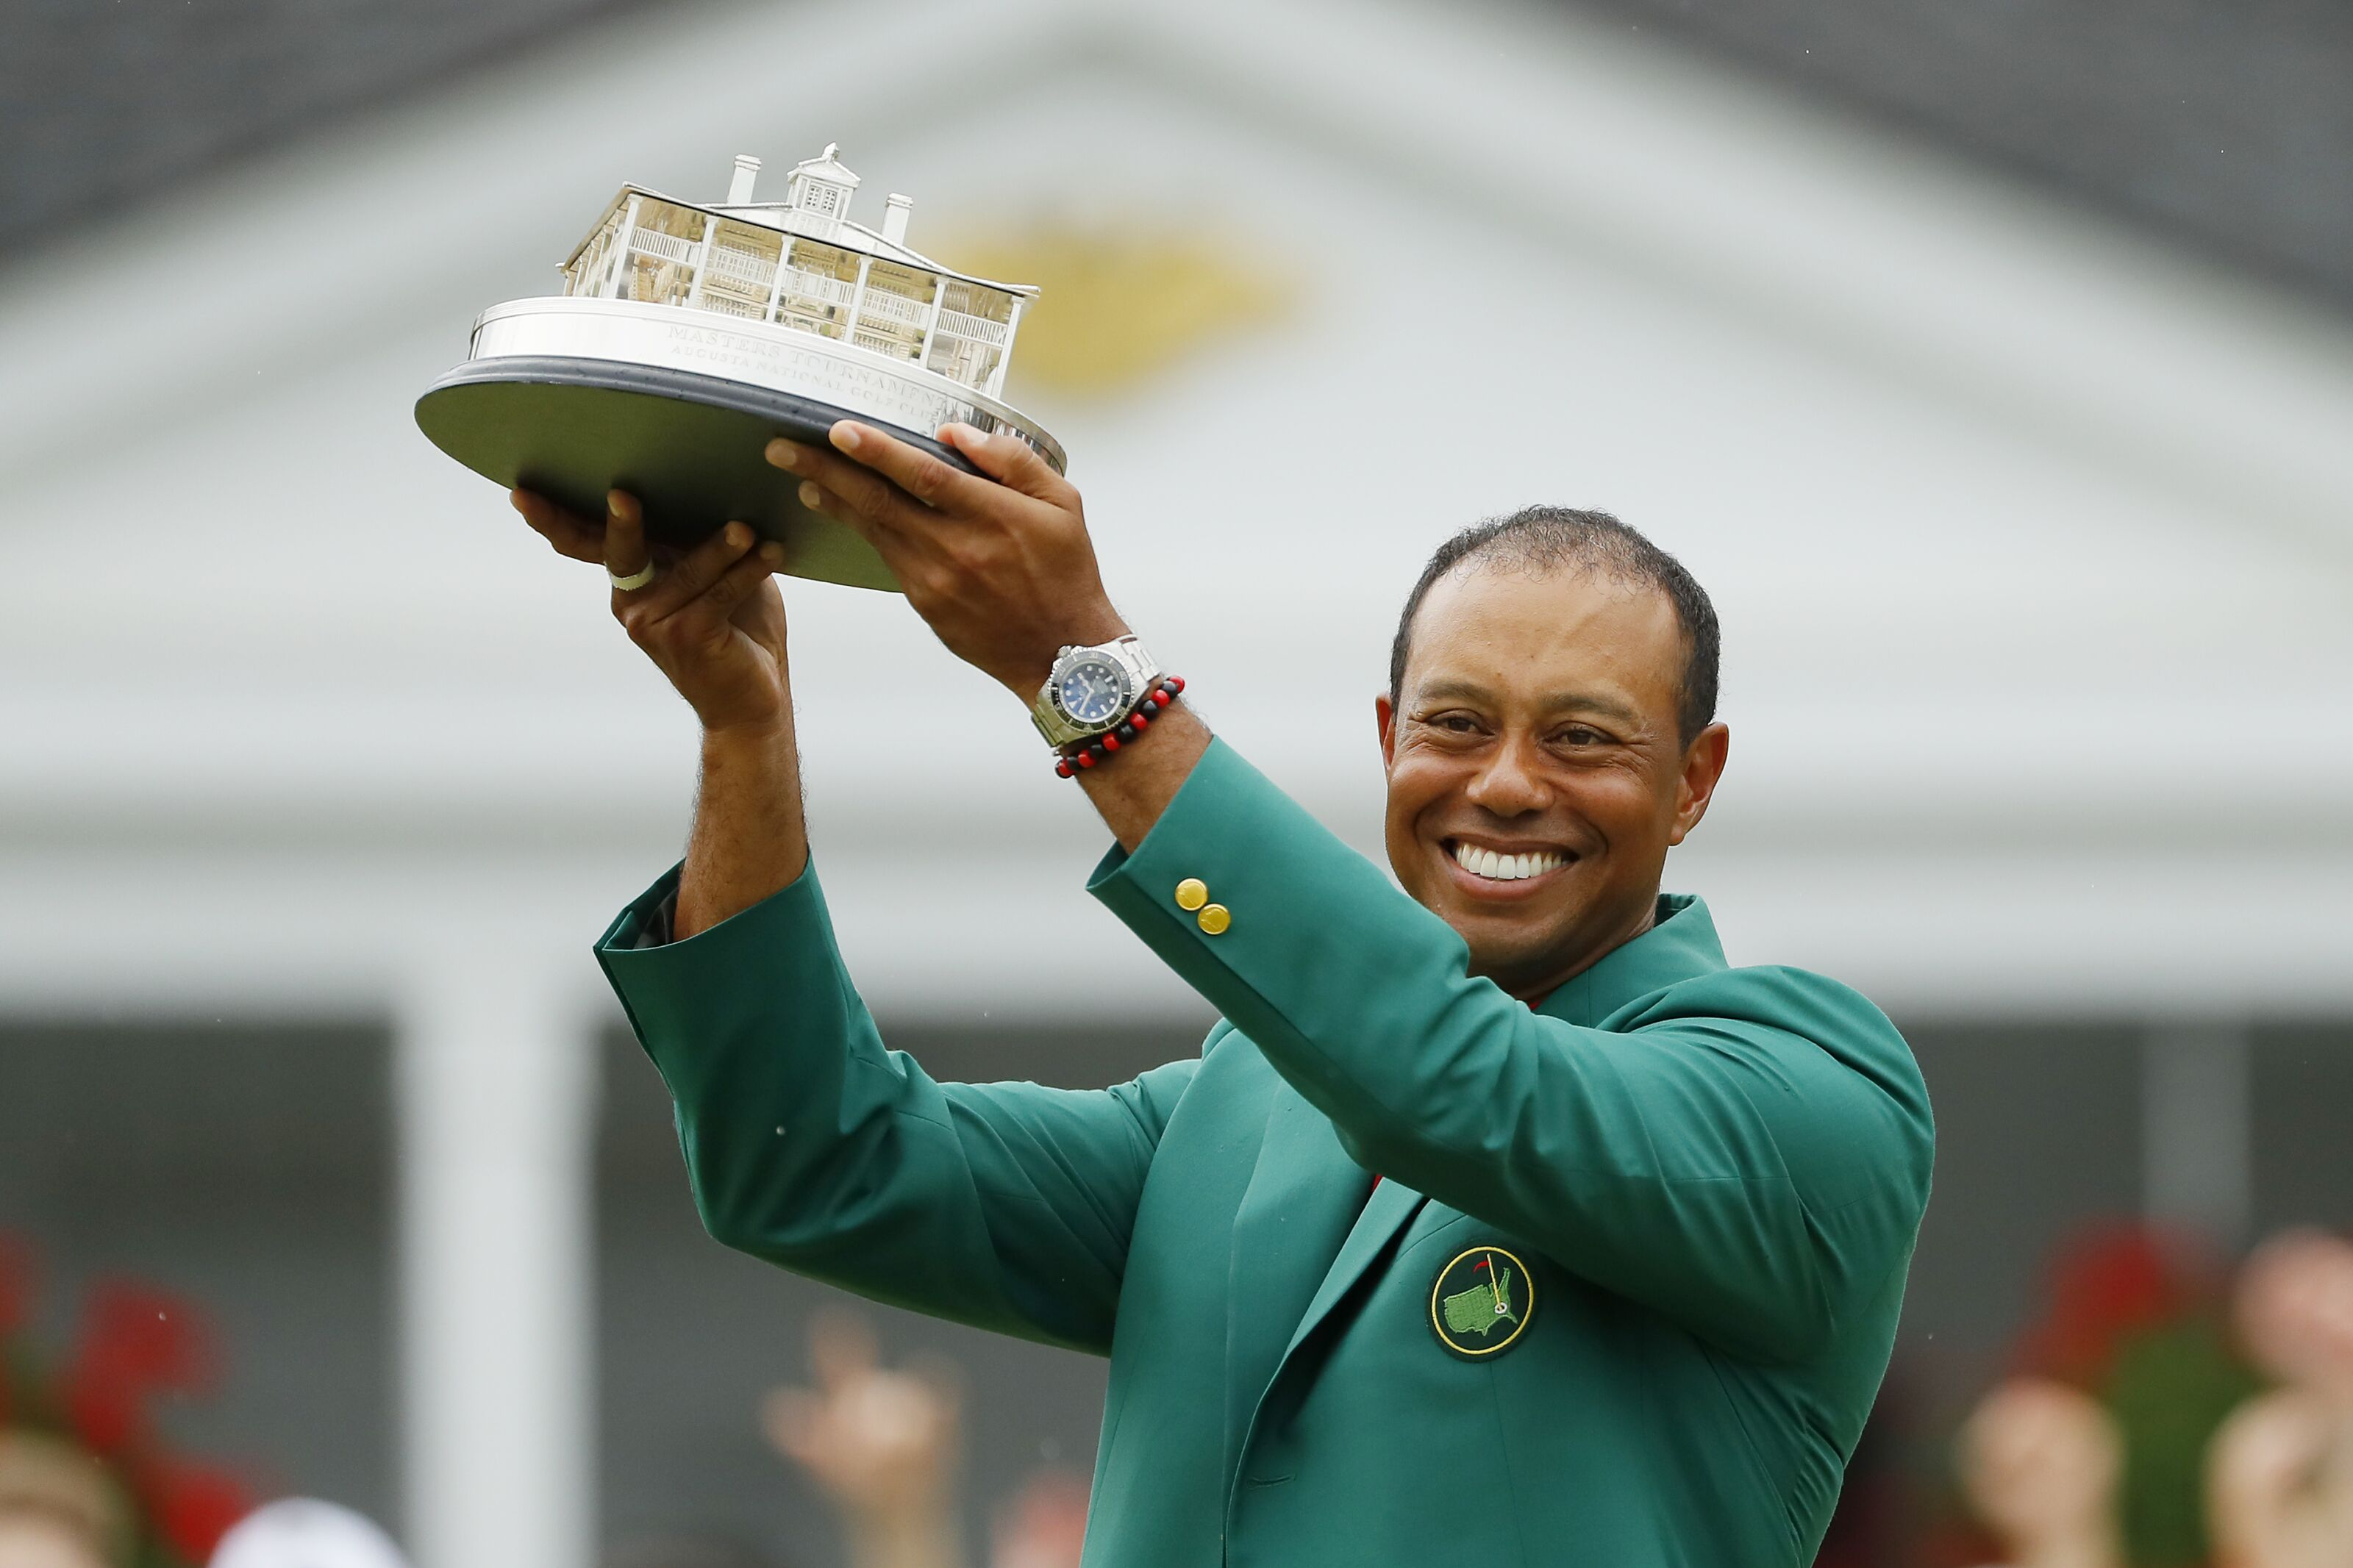 AUGUSTA, GEORGIA - APRIL 14: Tiger Woods of the United States celebrates with the Masters Trophy during the Green Jacket Ceremony after winning the Masters at Augusta National Golf Club on April 14, 2019 in Augusta, Georgia. (Photo by Kevin C. Cox/Getty Images)